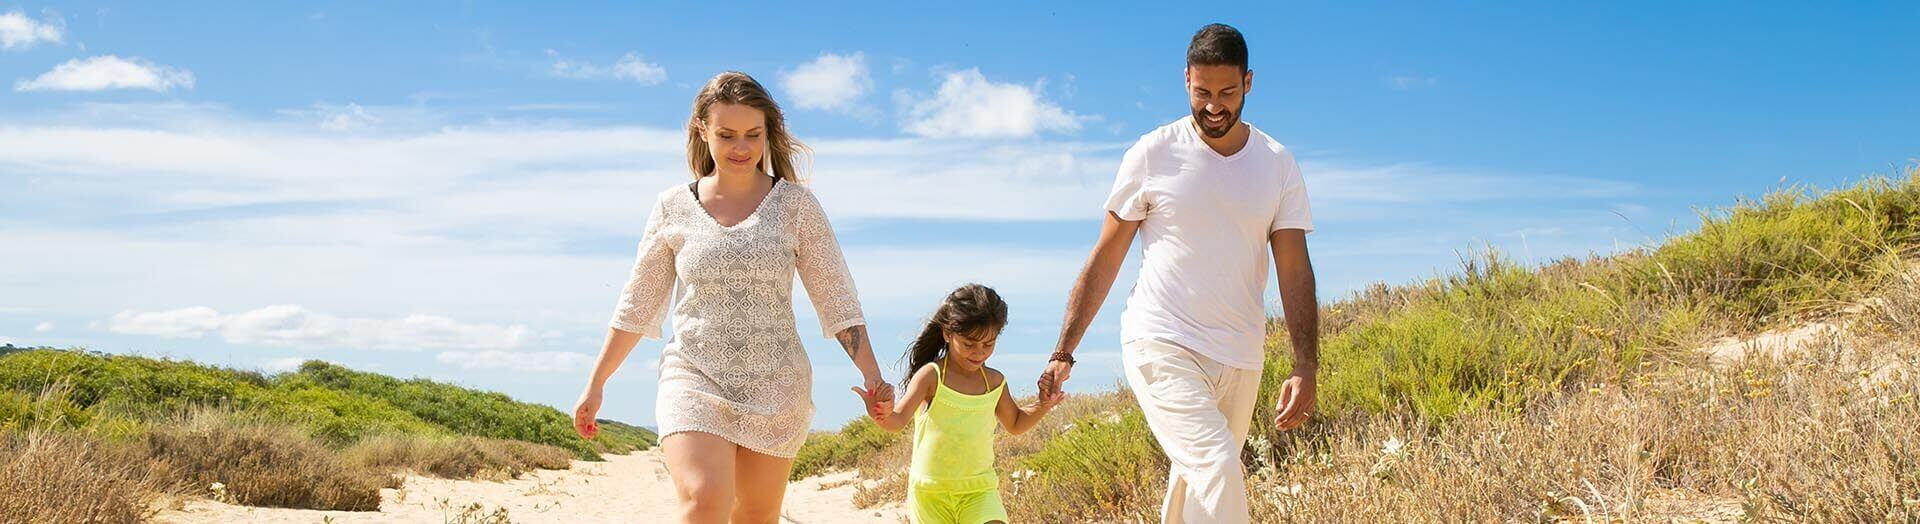 family day out at the beach